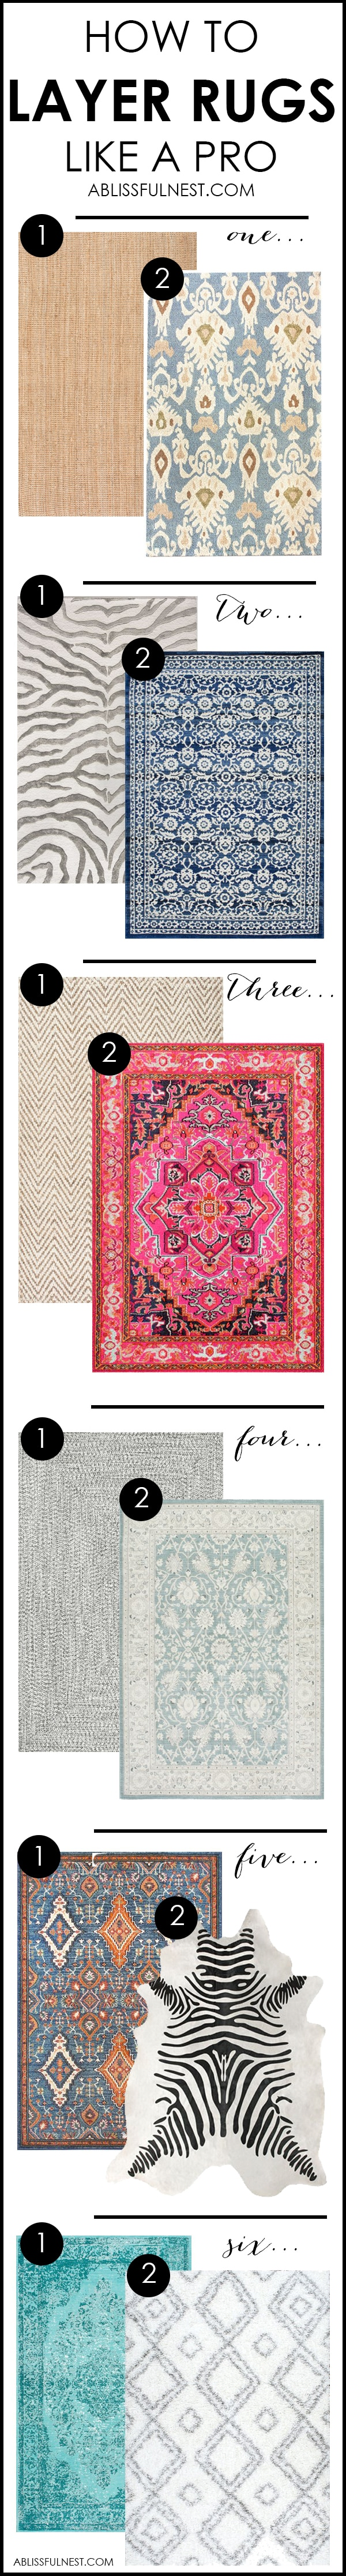 It's time for a change! Show some designer flare and learn how to layer rugs like a pro. The designers all do it for a reason. It makes BIG impact. Make your room pop with these 5 simple tips from A Blissful Nest. http://ablissfulnest.com/ #rugideas #designtips #homedecortips #livingroom #livingroomideas